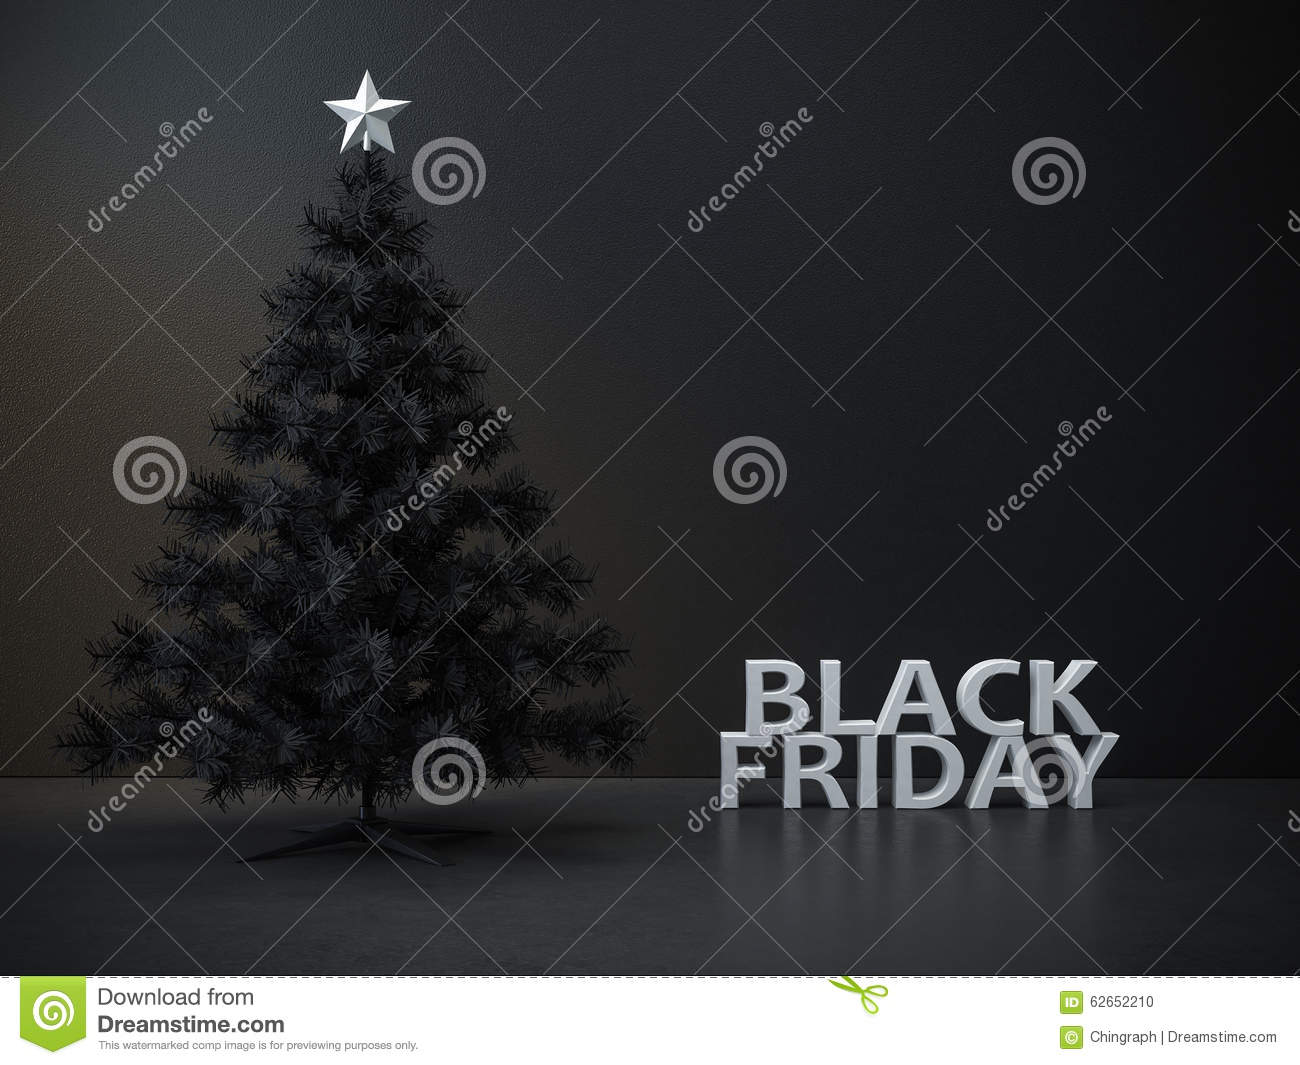 black friday christmas tree background - Black Friday Christmas Tree Sale